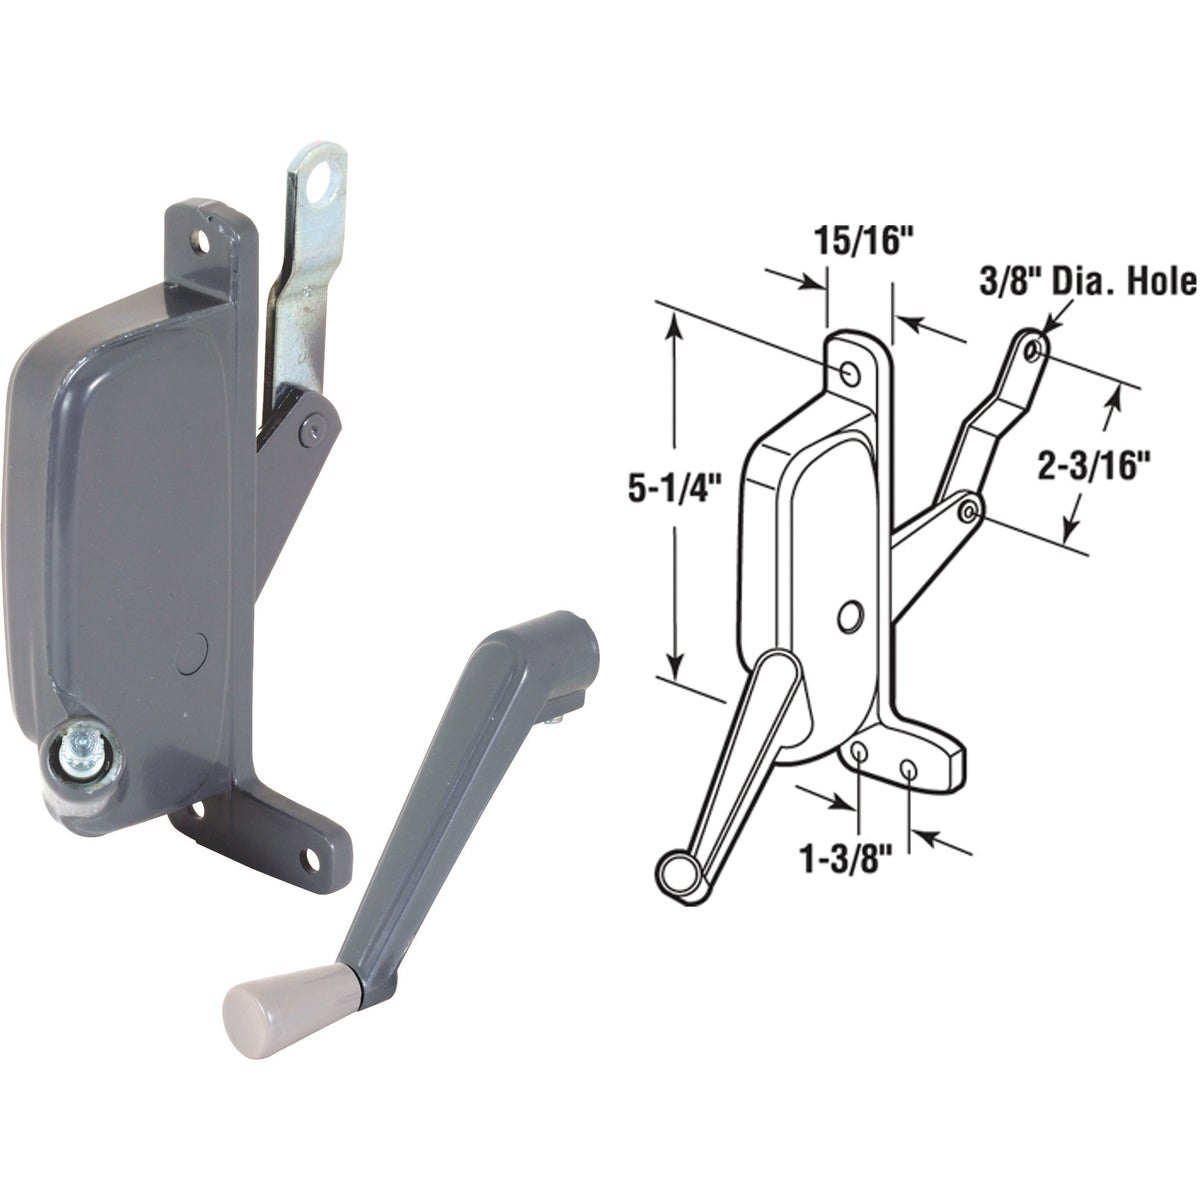 LEFT AWNING OPERATOR - 171781-L by Prime Line Products